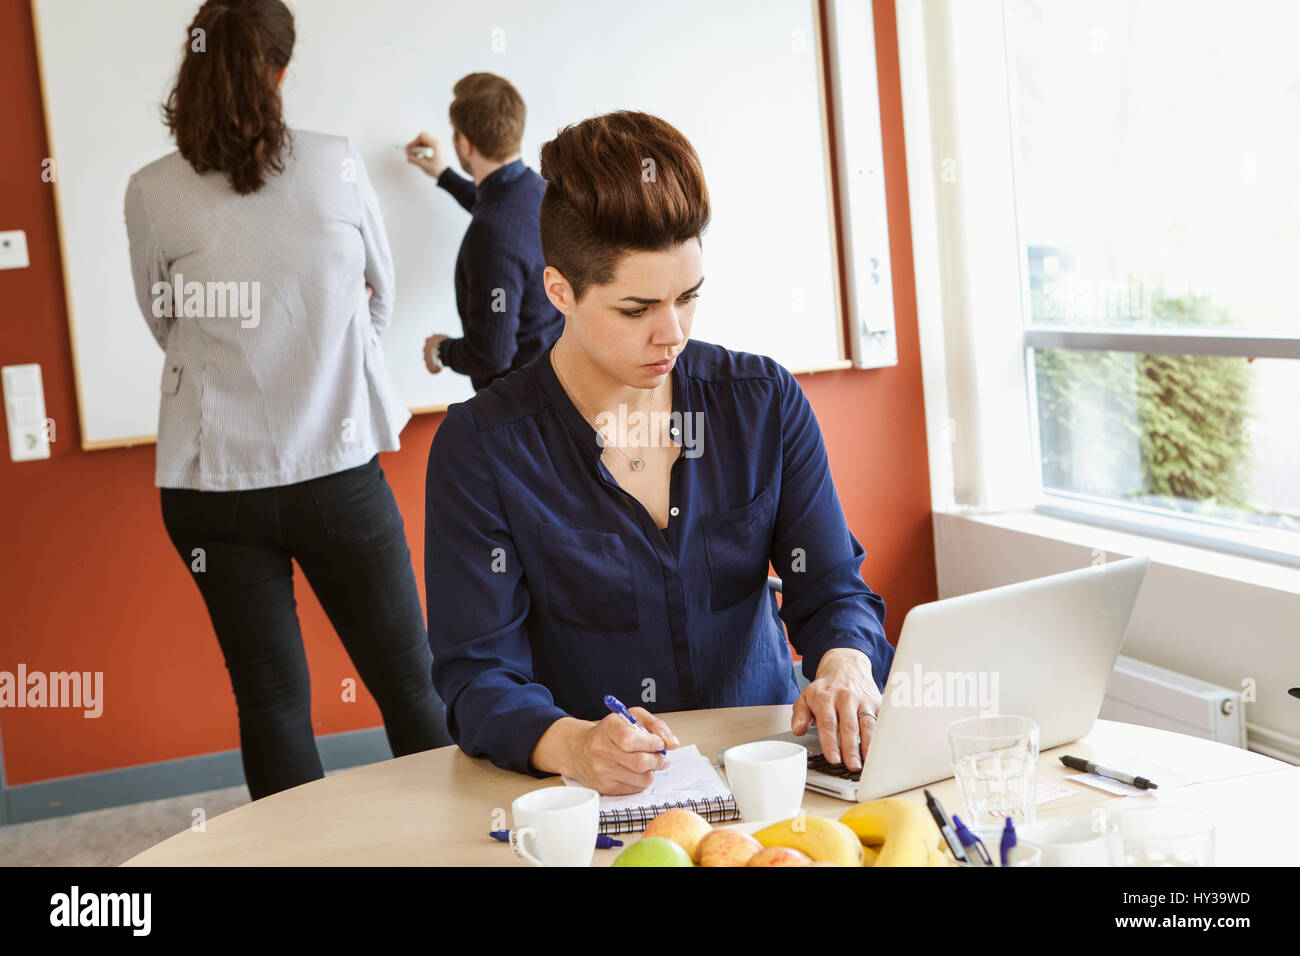 Sweden, Woman making notes during board meeting - Stock Image